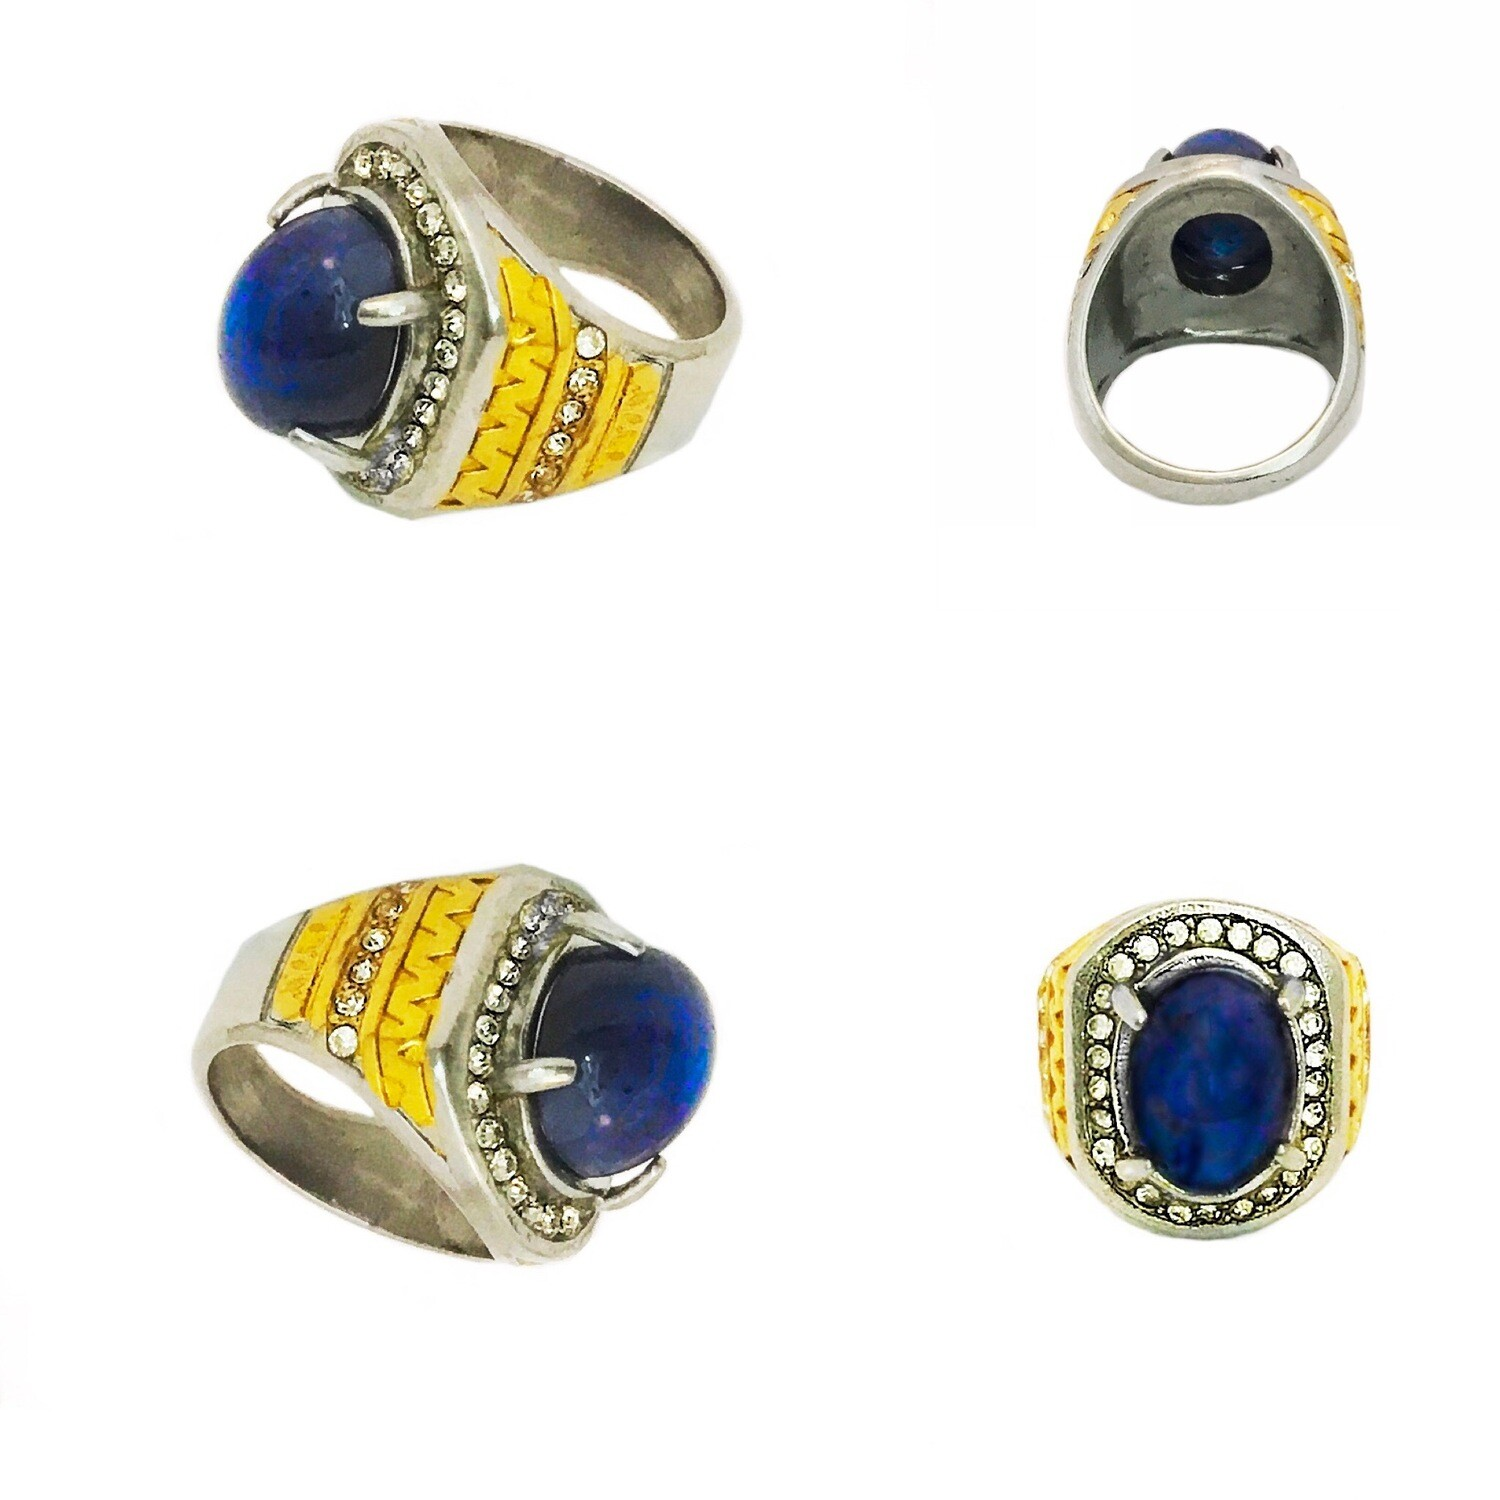 Powerful Lapis Lazuli ring enhancing personal insight and protection through aquatic and cosmic energy